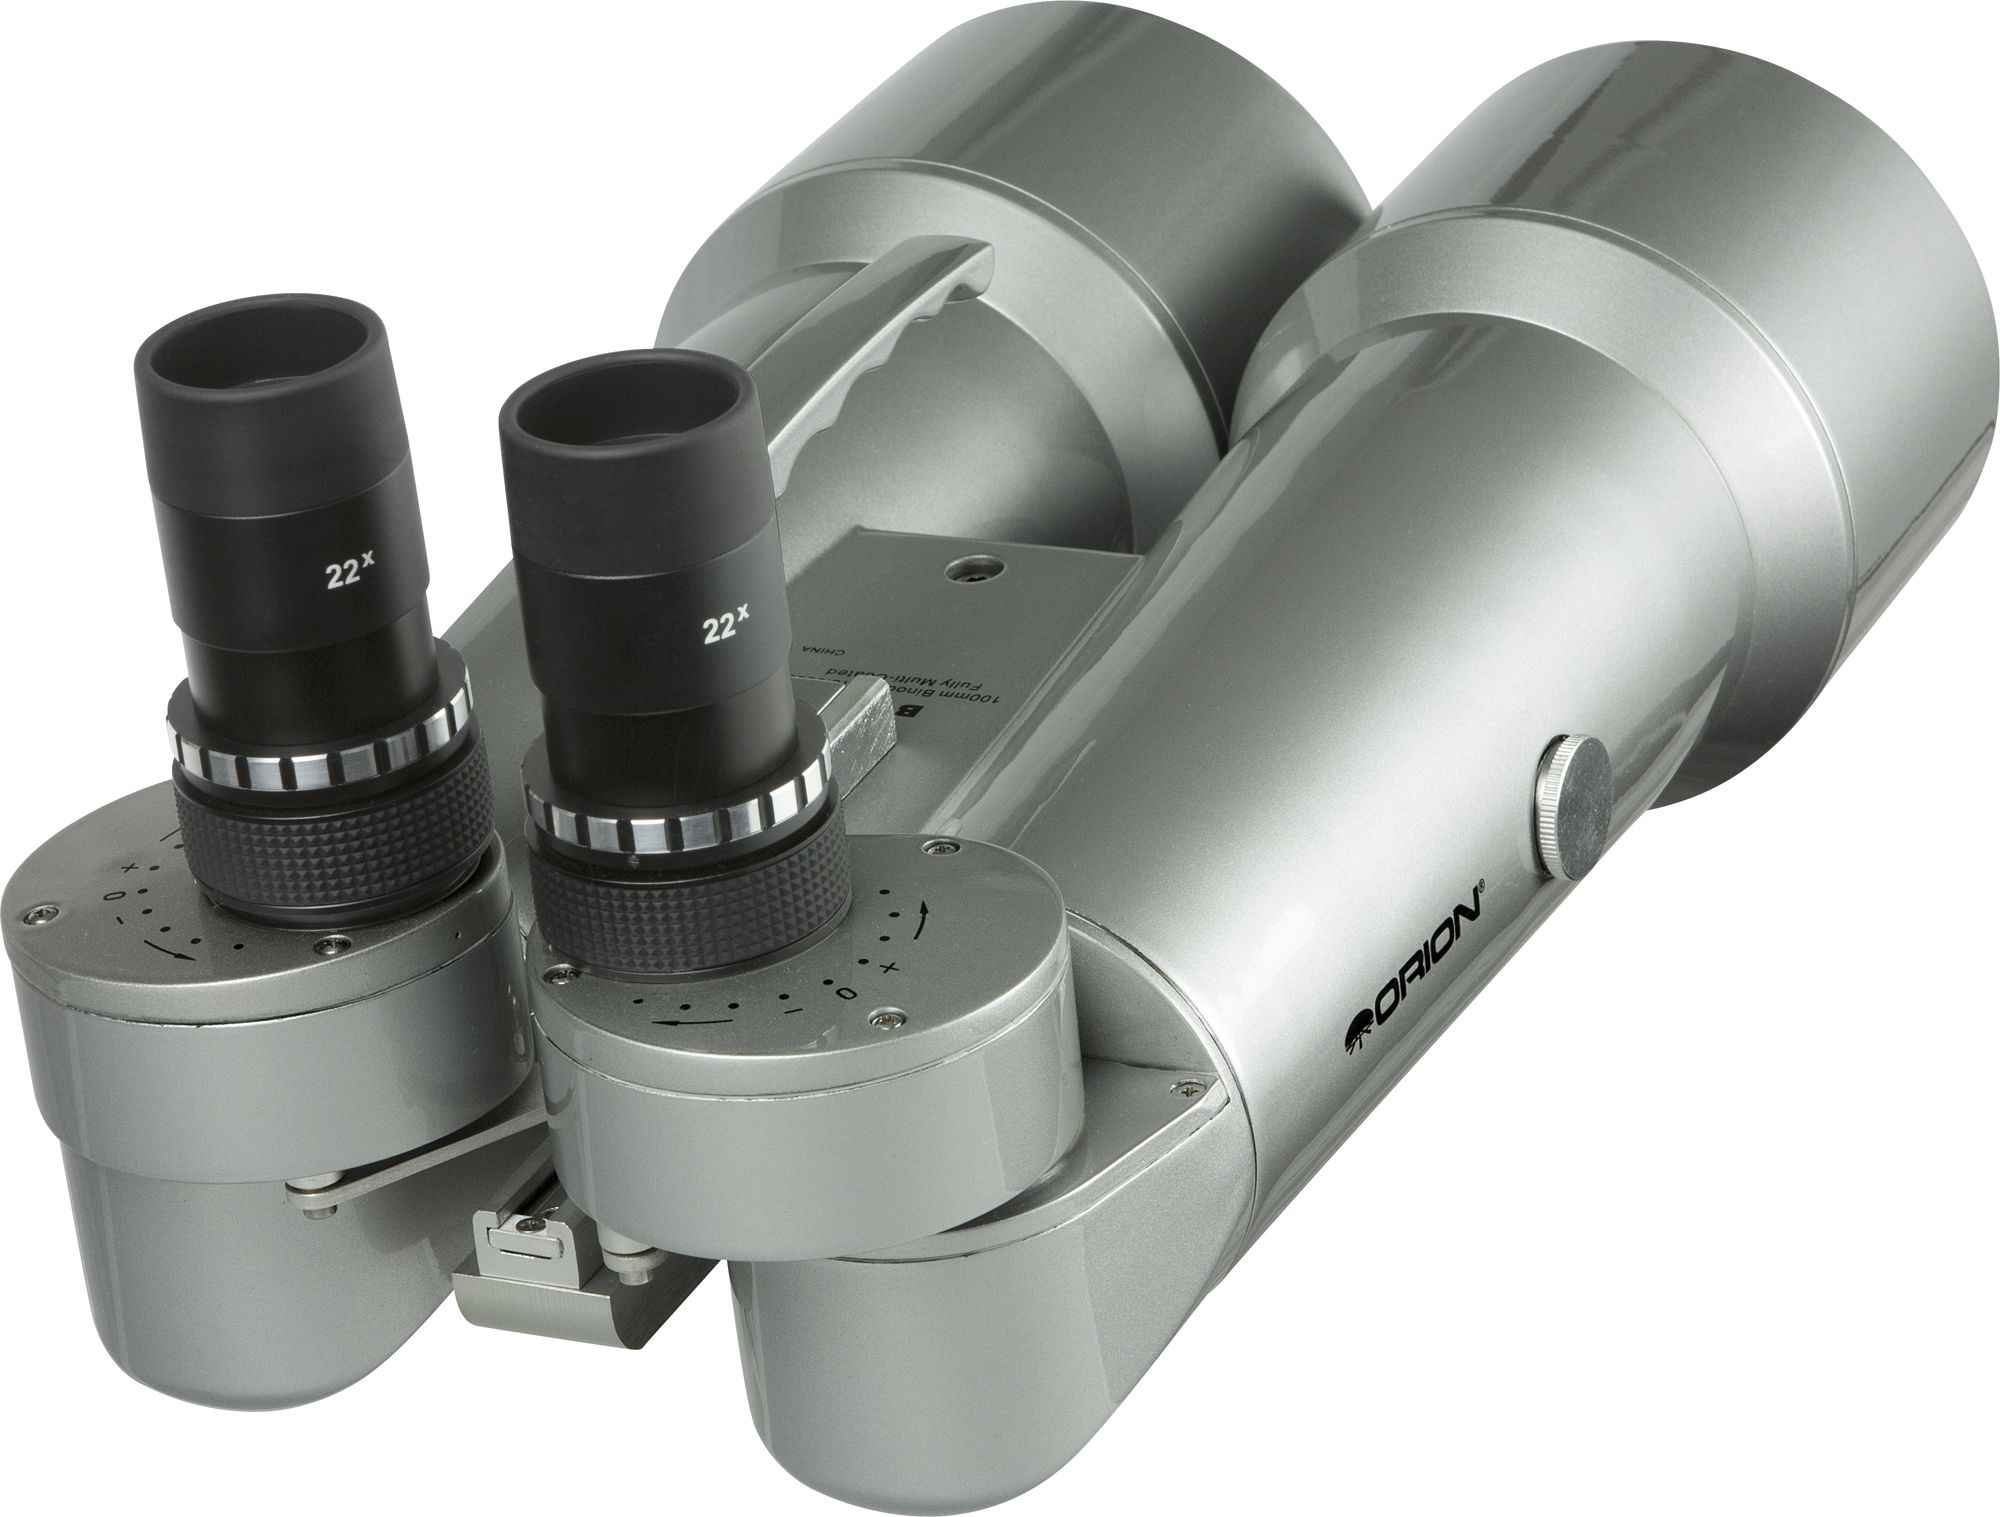 Complete Guide to Binocular Sizes & Uses | Orion Telescopes: Articles